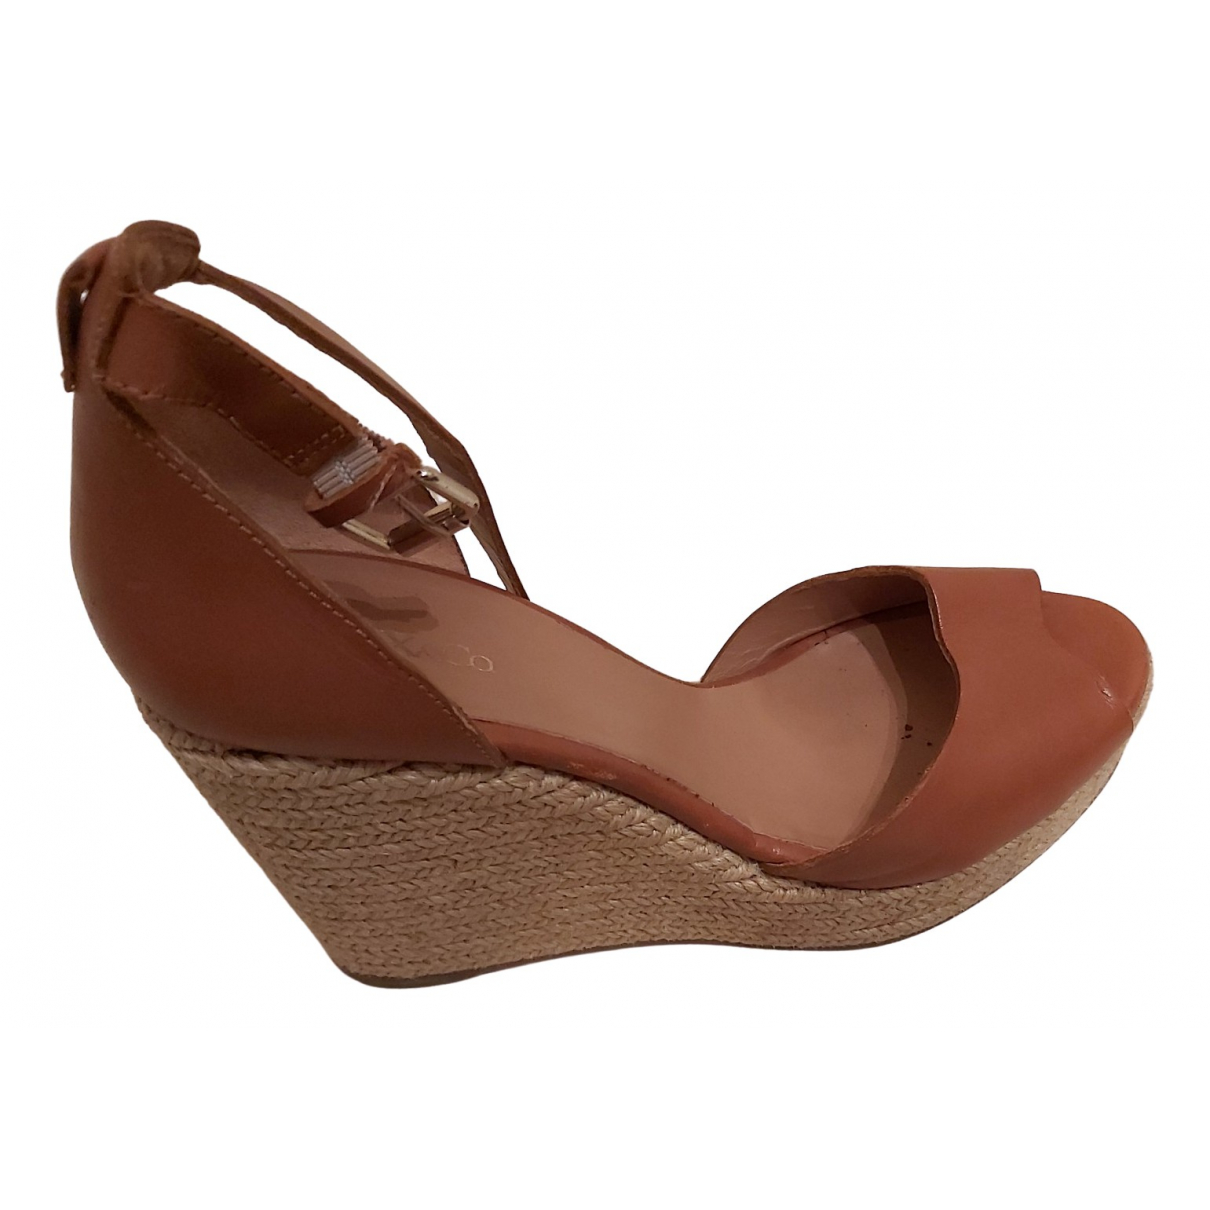 Max & Co \N Camel Fur Sandals for Women 39 EU